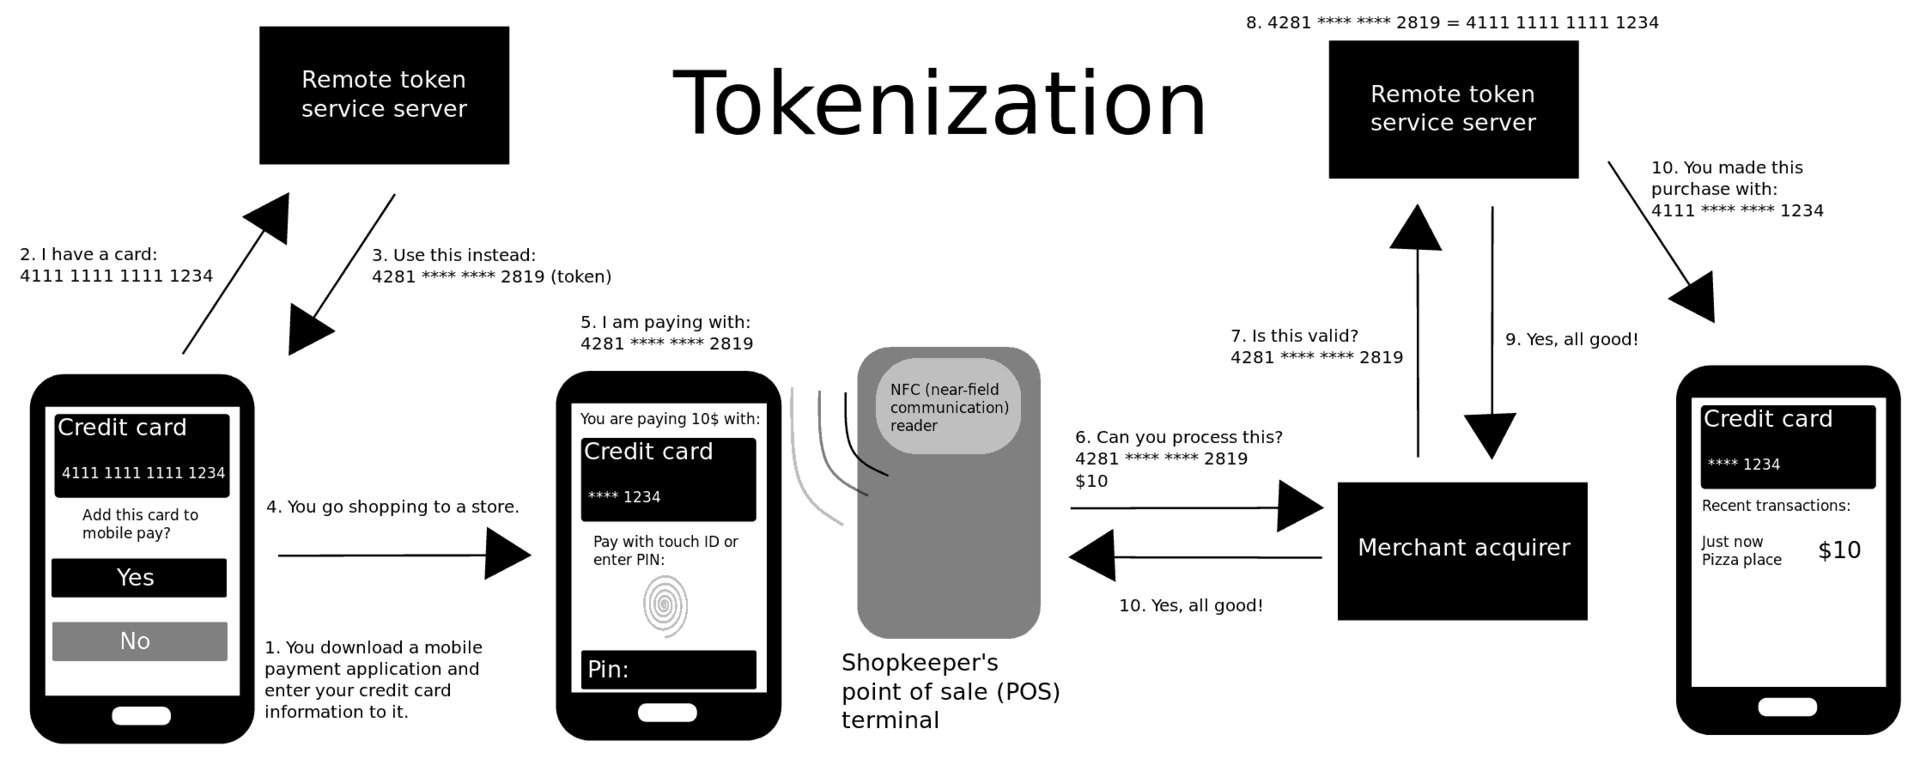 1920px-How_mobile_payment_tokenization_works.png